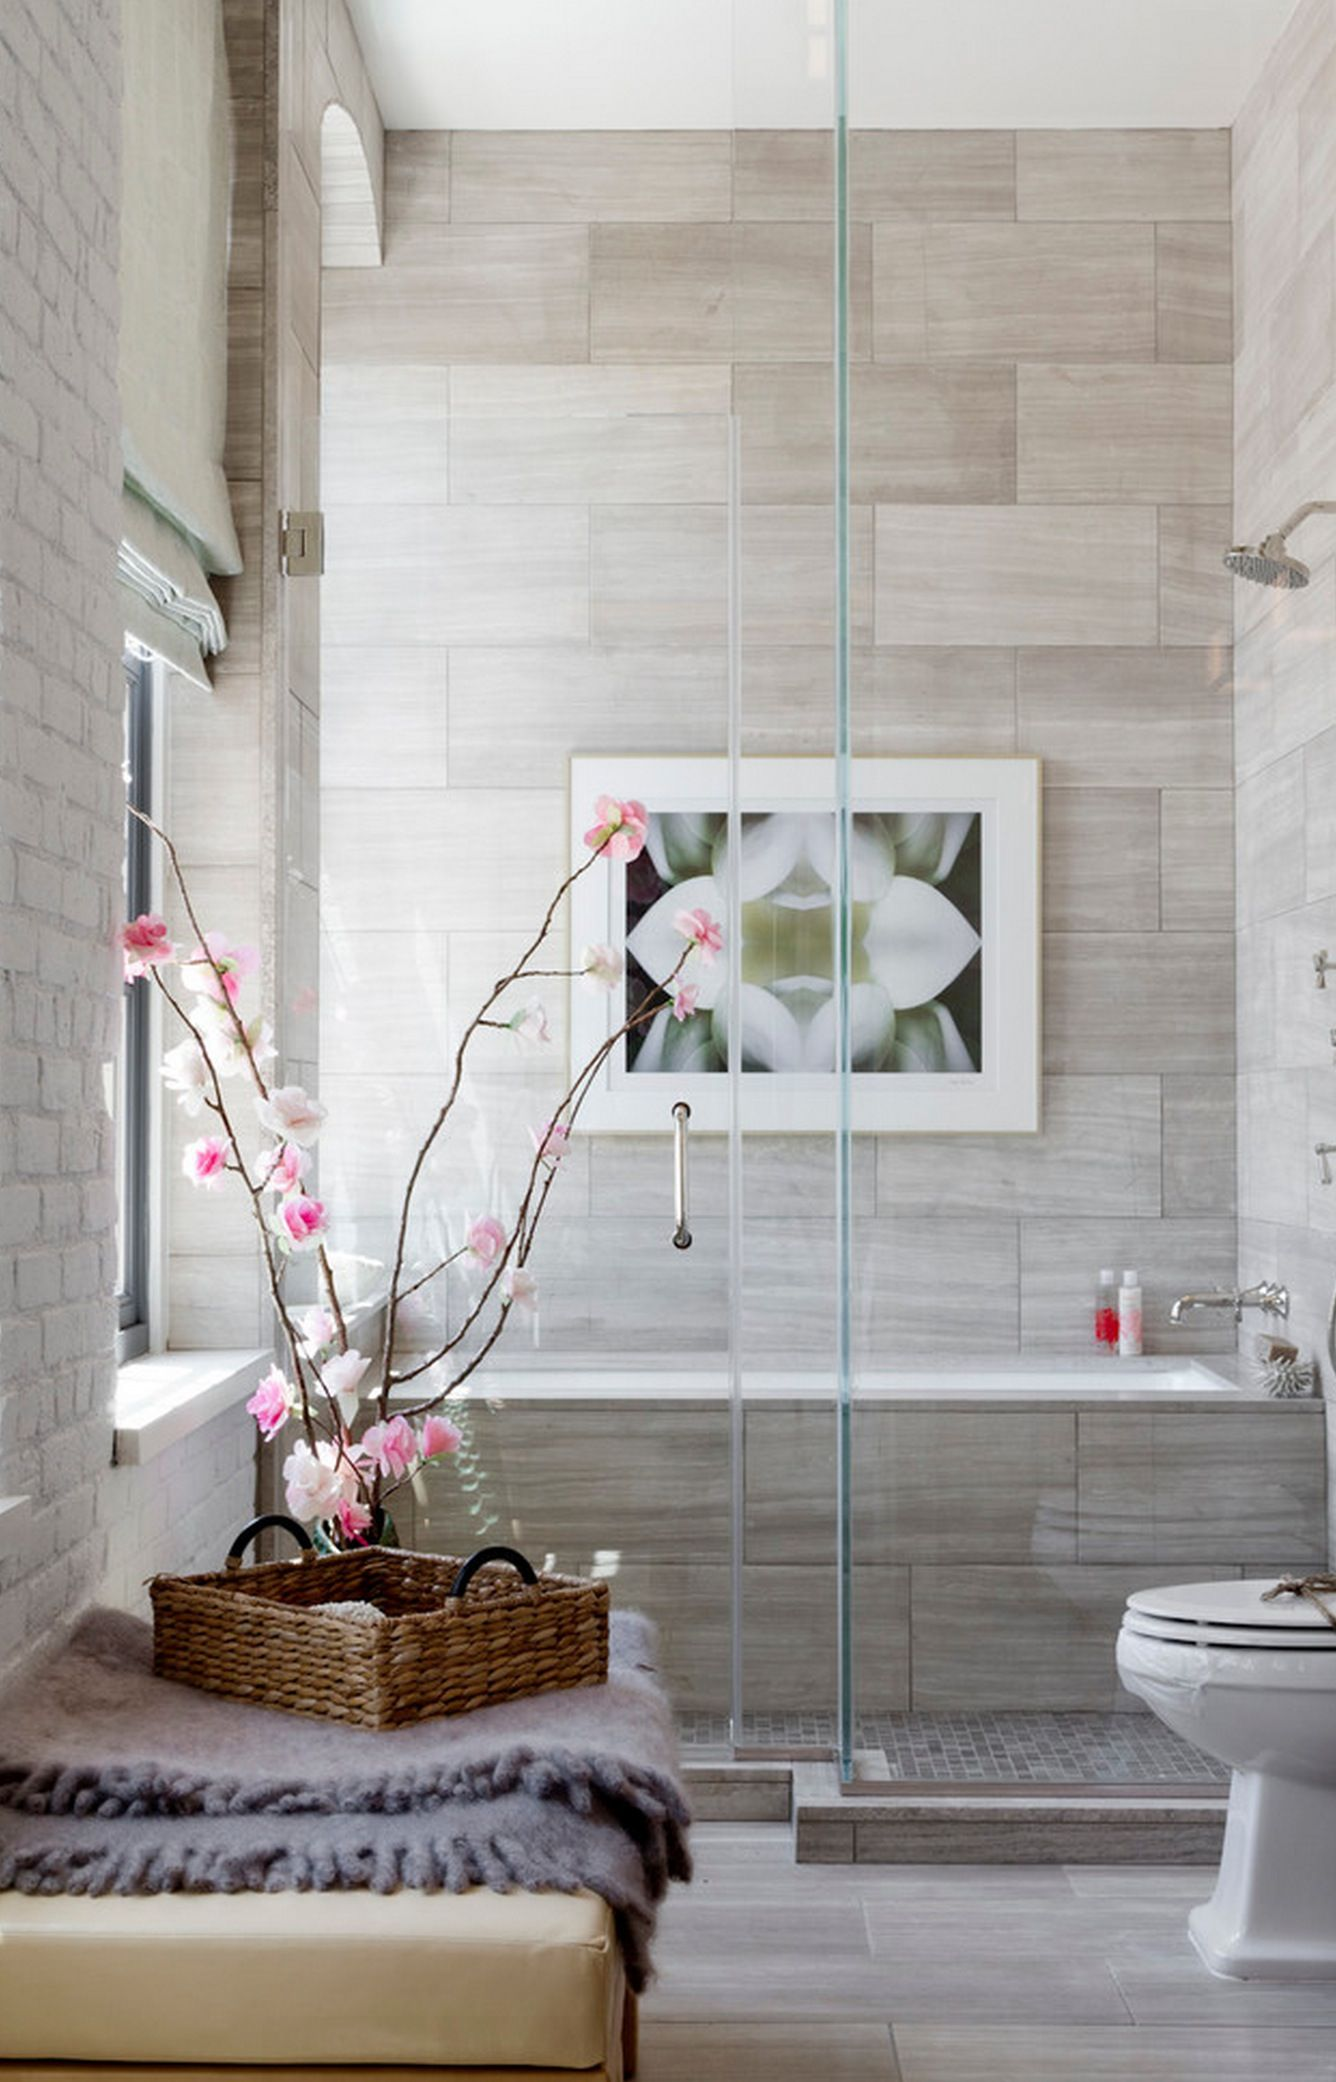 Minimal bath room with a bench over shower. Ideal for rest and relax ...